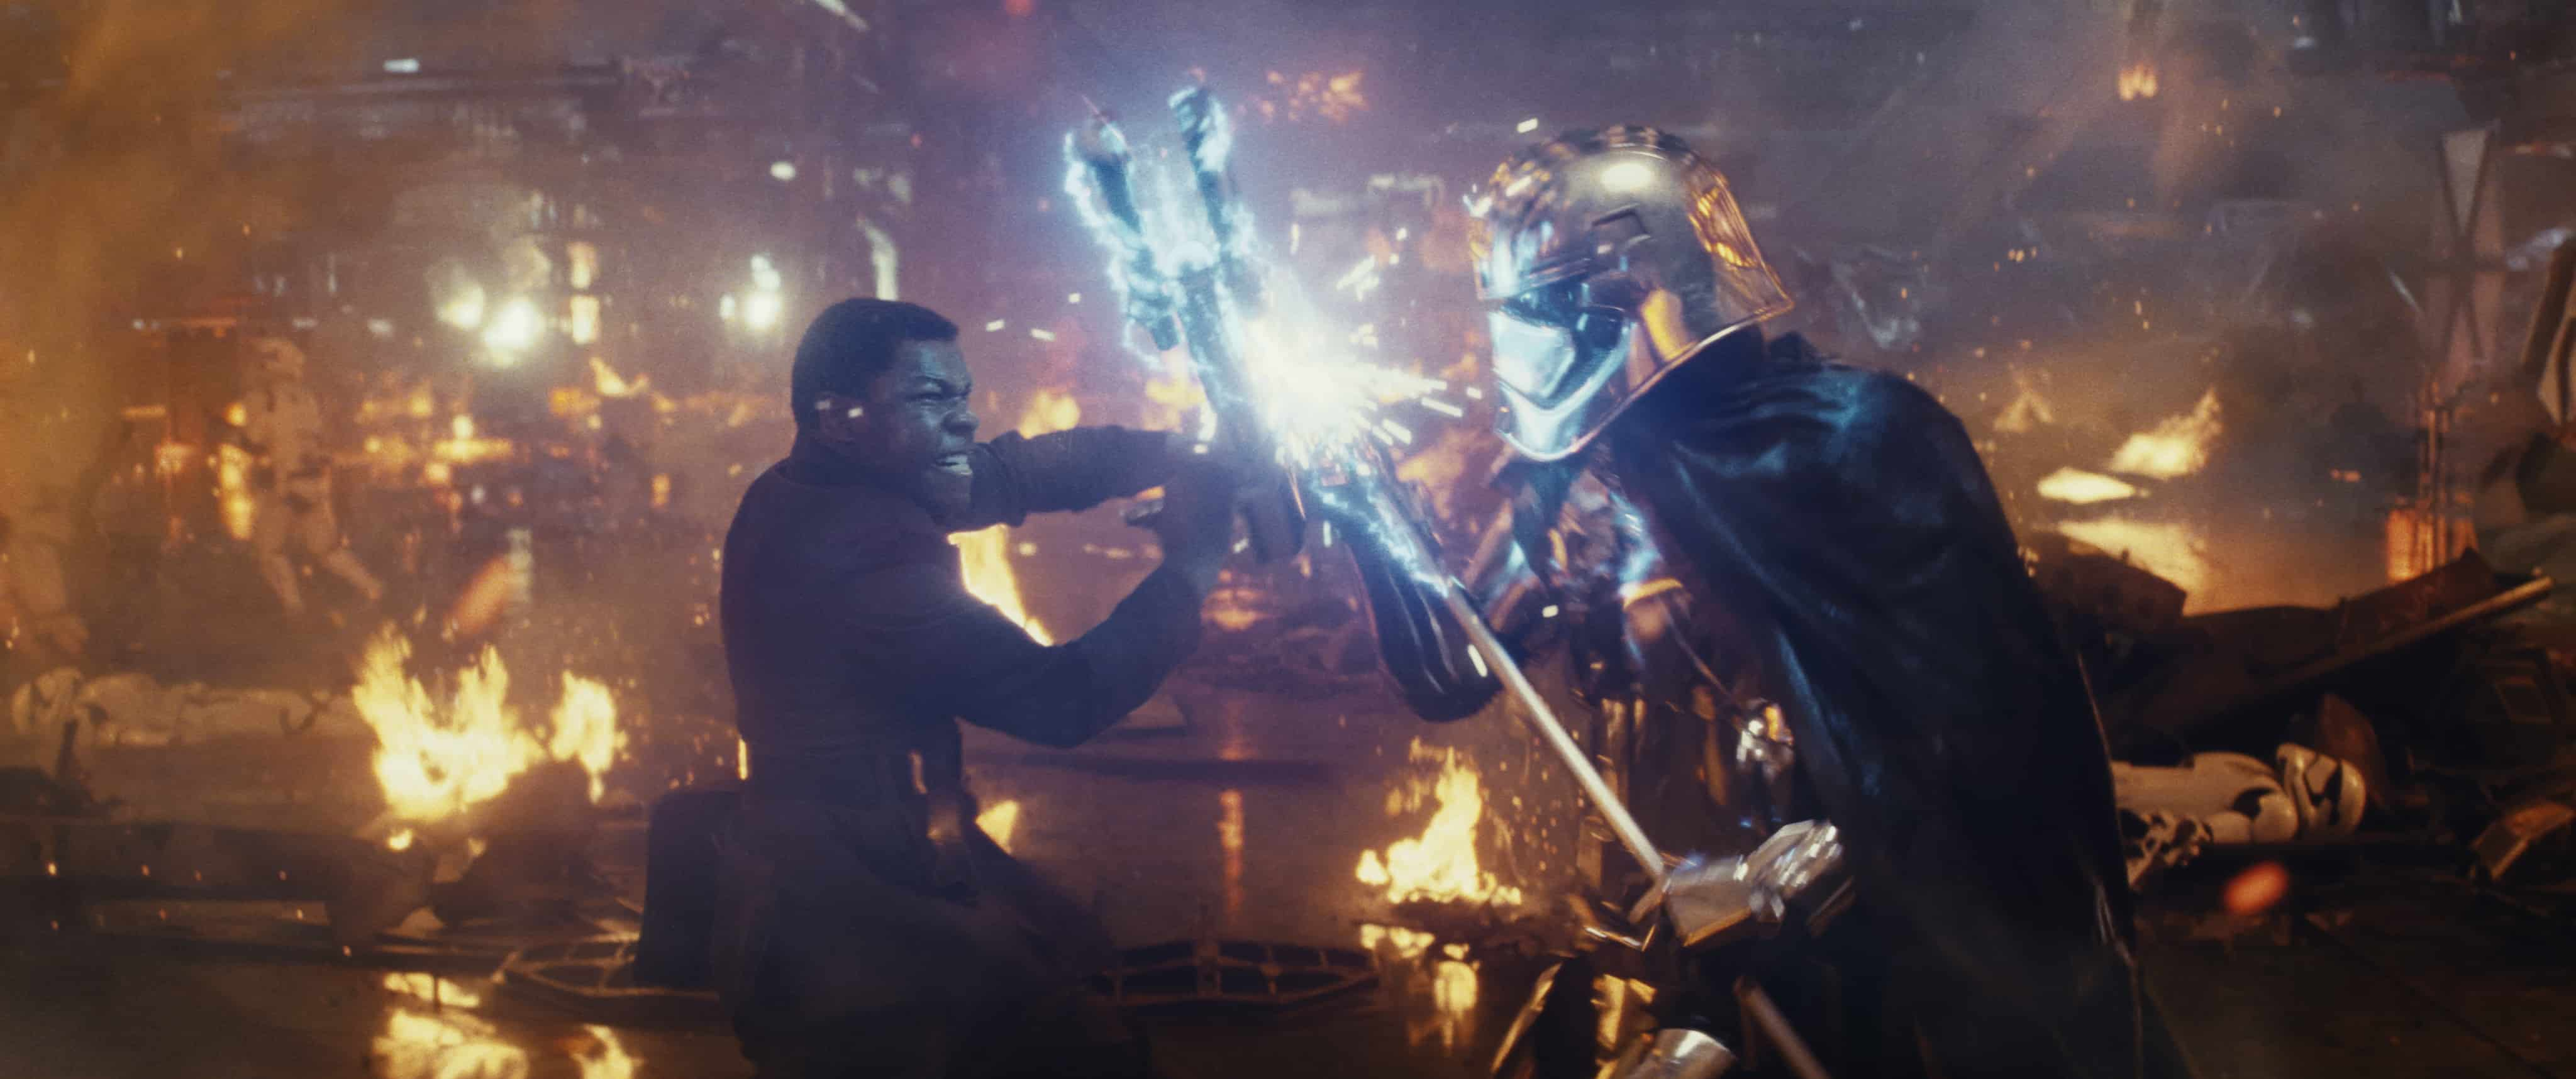 Is Star Wars: The Last Jedi Kid friendly? Fight scenes may be too much.